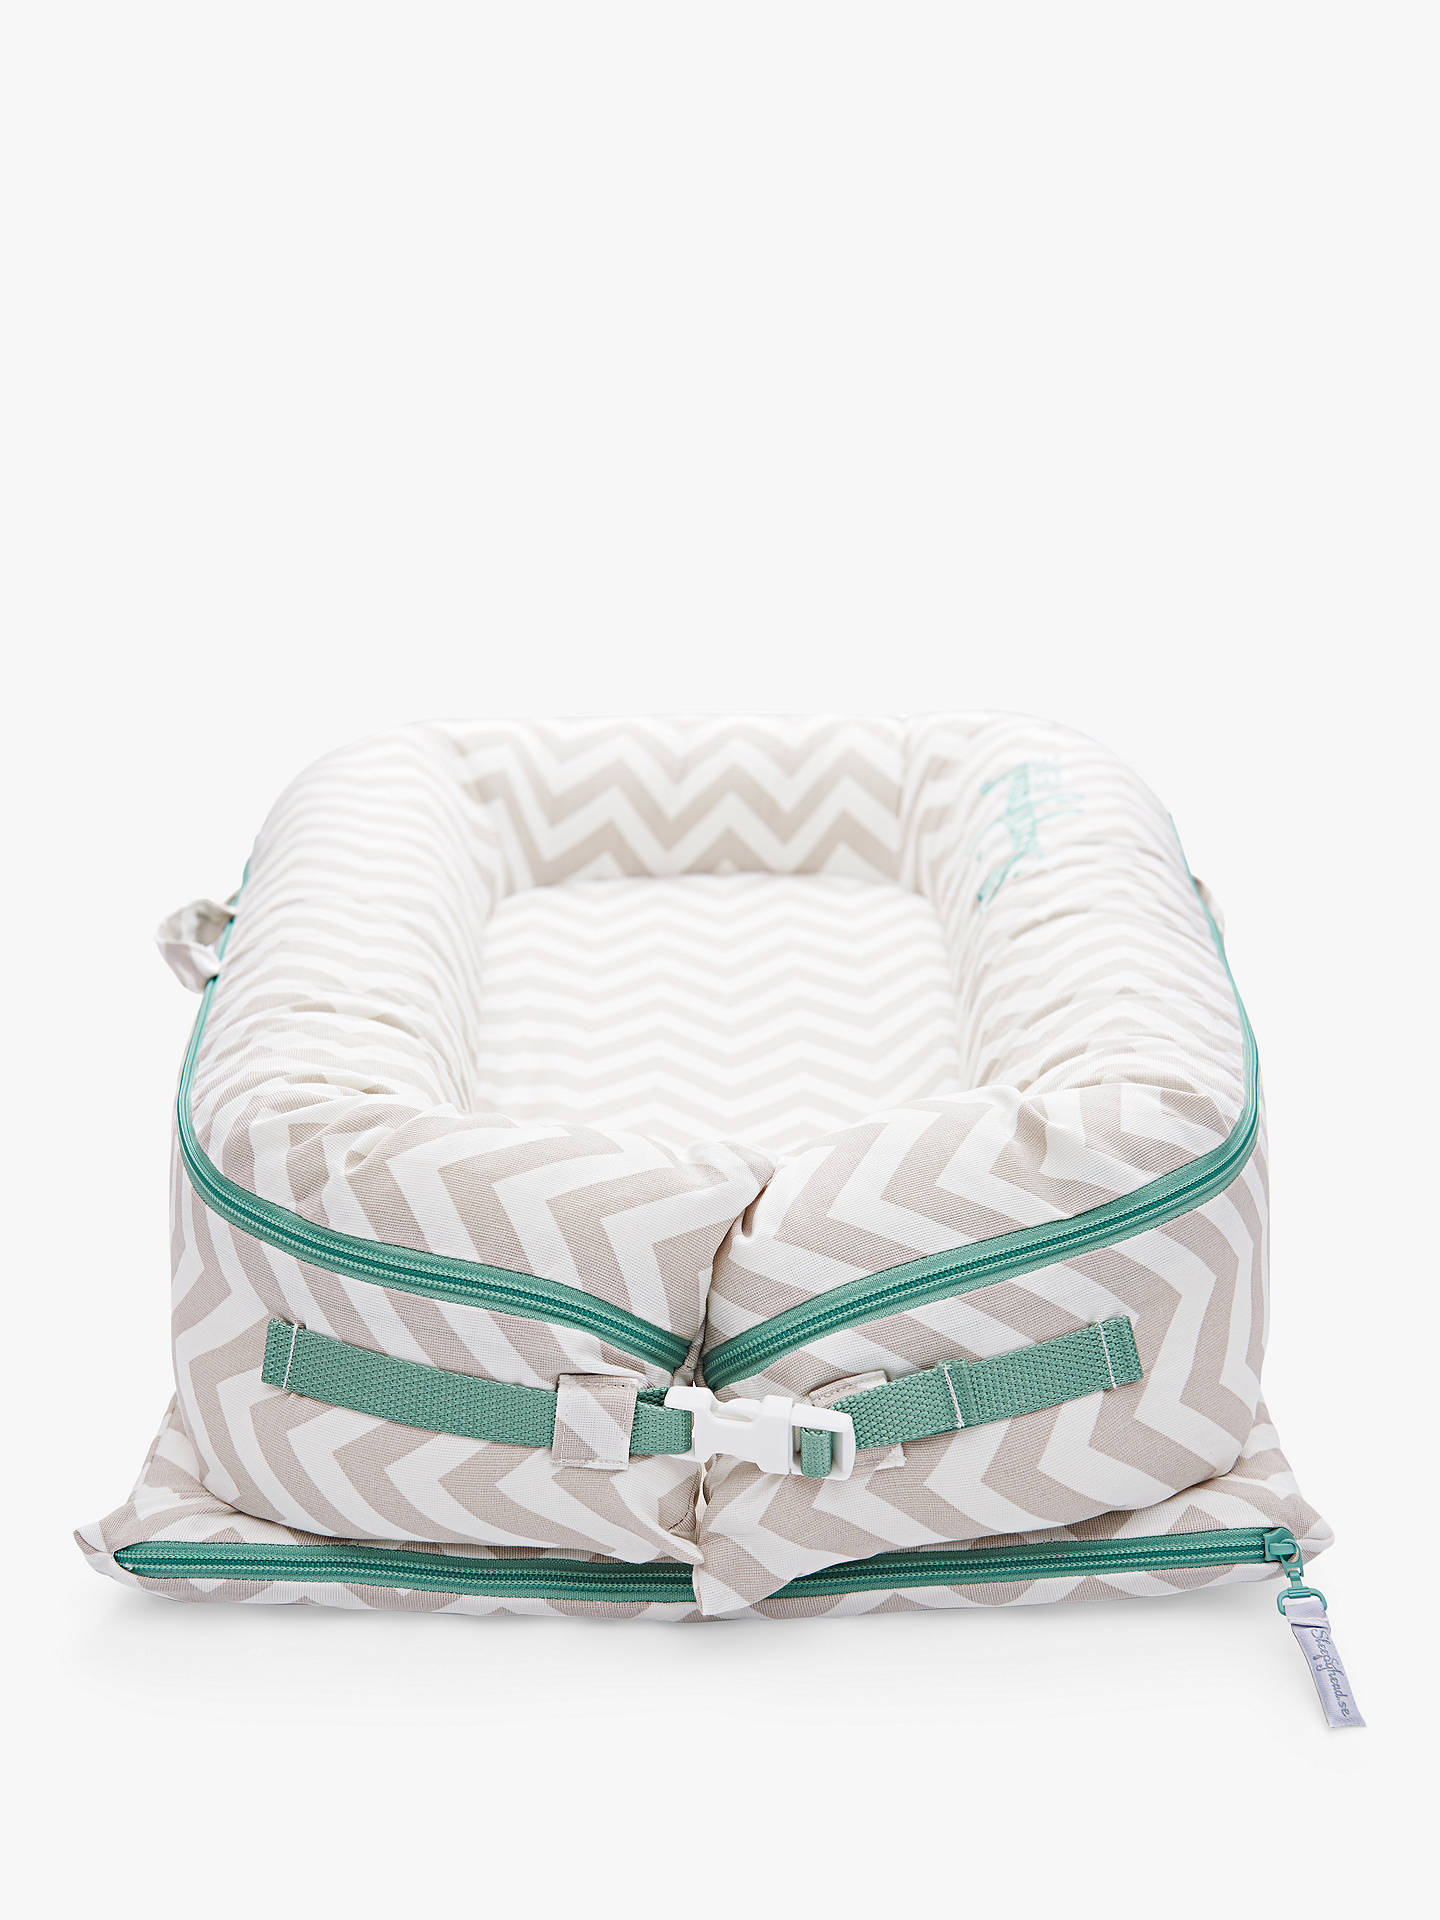 Buy Sleepyhead Deluxe+ Silver Lining Baby Pod, 0-8 months Online at johnlewis.com